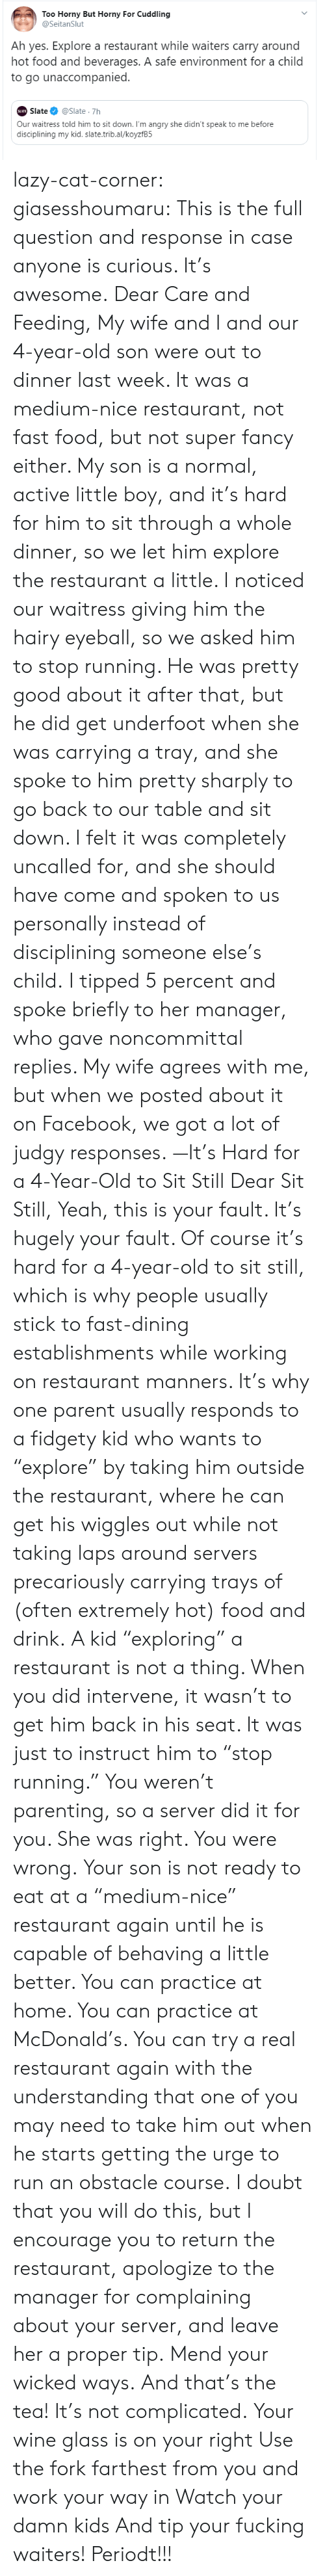 "Facebook, Fast Food, and Food: Too Horny But Horny For Cuddling  @SeitanSlut  Ah yes. Explore a restaurant while waiters carry around  hot food and beverages. A safe environment for a child  to go unaccompanied.  Slate  @Slate 7h  SLATE  Our waitress told him to sit down. I'm angry she didn't speak to me before  disciplining my kid. slate.trib.al/koyzfB5 lazy-cat-corner: giasesshoumaru:   This is the full question and response in case anyone is curious. It's awesome. Dear Care and Feeding, My wife and I and our 4-year-old son were out to dinner last week. It was a medium-nice restaurant, not fast food, but not super fancy either. My son is a normal, active little boy, and it's hard for him to sit through a whole dinner, so we let him explore the restaurant a little. I noticed our waitress giving him the hairy eyeball, so we asked him to stop running. He was pretty good about it after that, but he did get underfoot when she was carrying a tray, and she spoke to him pretty sharply to go back to our table and sit down. I felt it was completely uncalled for, and she should have come and spoken to us personally instead of disciplining someone else's child. I tipped 5 percent and spoke briefly to her manager, who gave noncommittal replies. My wife agrees with me, but when we posted about it on Facebook, we got a lot of judgy responses. —It's Hard for a 4-Year-Old to Sit Still Dear Sit Still, Yeah, this is your fault. It's hugely your fault. Of course it's hard for a 4-year-old to sit still, which is why people usually stick to fast-dining establishments while working on restaurant manners. It's why one parent usually responds to a fidgety kid who wants to ""explore"" by taking him outside the restaurant, where he can get his wiggles out while not taking laps around servers precariously carrying trays of (often extremely hot) food and drink. A kid ""exploring"" a restaurant is not a thing. When you did intervene, it wasn't to get him back in his seat. It was just to instruct him to ""stop running."" You weren't parenting, so a server did it for you. She was right. You were wrong. Your son is not ready to eat at a ""medium-nice"" restaurant again until he is capable of behaving a little better. You can practice at home. You can practice at McDonald's. You can try a real restaurant again with the understanding that one of you may need to take him out when he starts getting the urge to run an obstacle course. I doubt that you will do this, but I encourage you to return the restaurant, apologize to the manager for complaining about your server, and leave her a proper tip. Mend your wicked ways.   And that's the tea!  It's not complicated. Your wine glass is on your right  Use the fork farthest from you and work your way in Watch your damn kids And tip your fucking waiters! Periodt!!!"